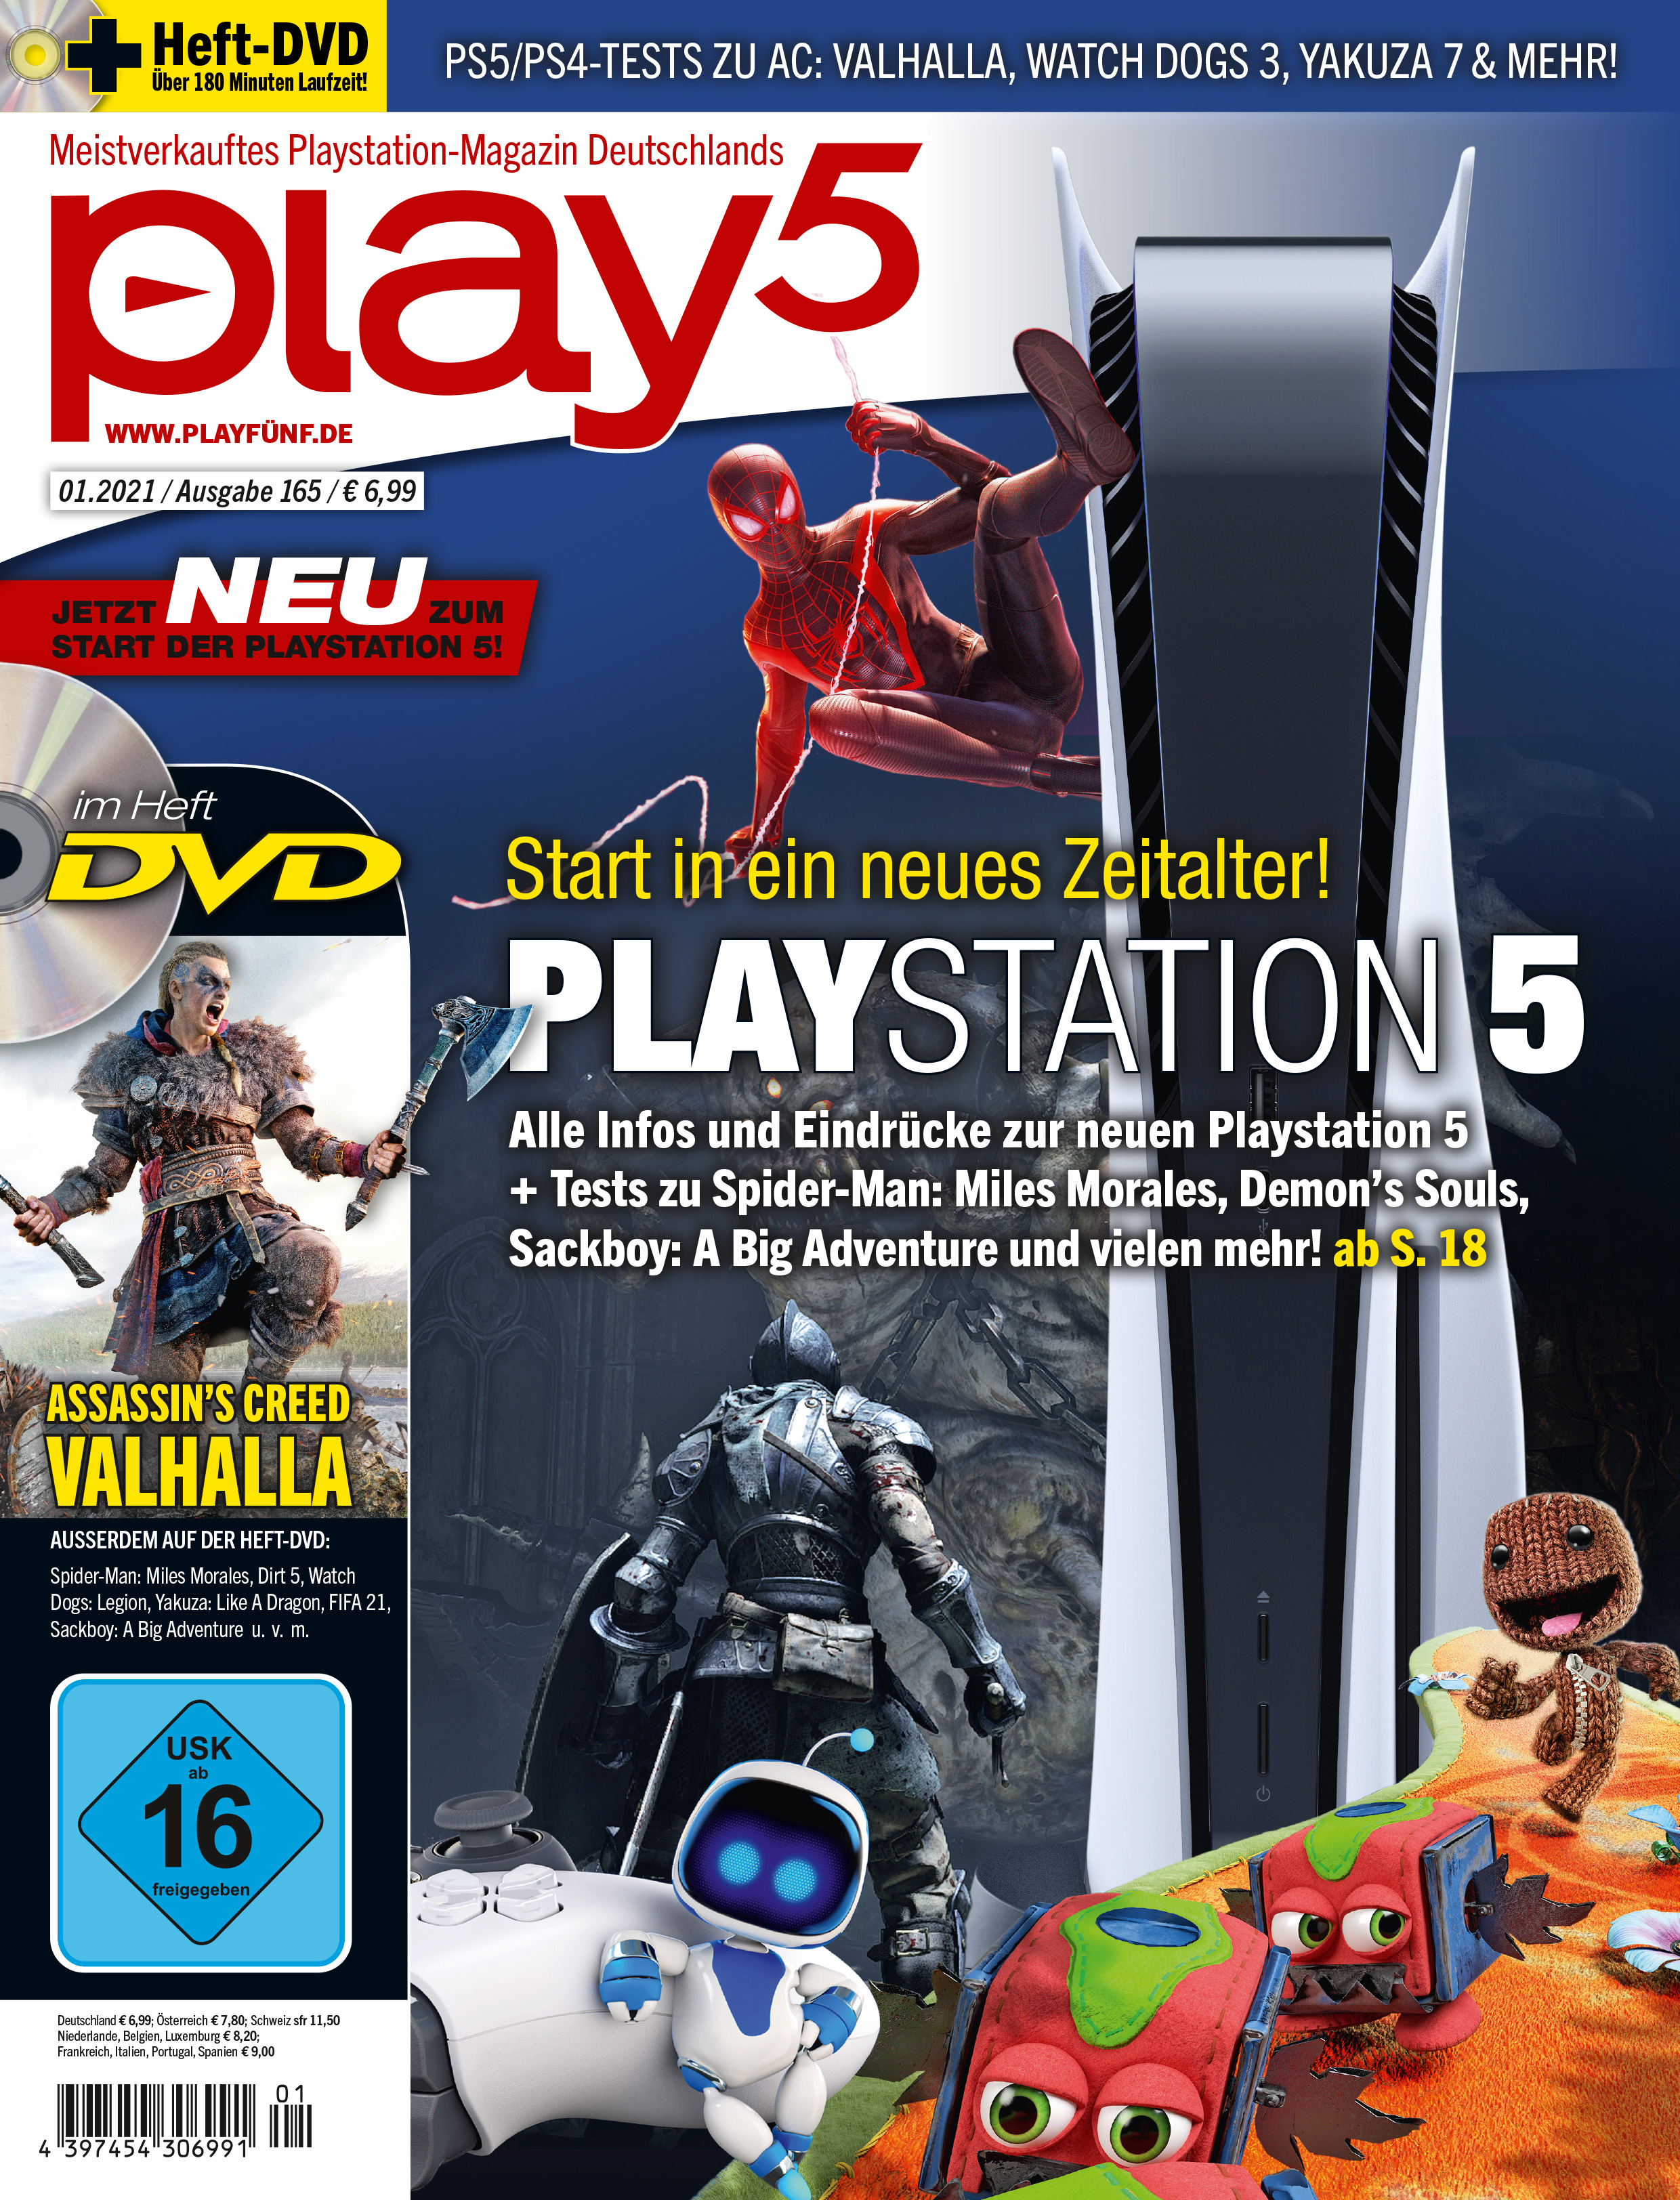 play5 01/21 with title story about the launch of the Playstation 5 u. v. m.